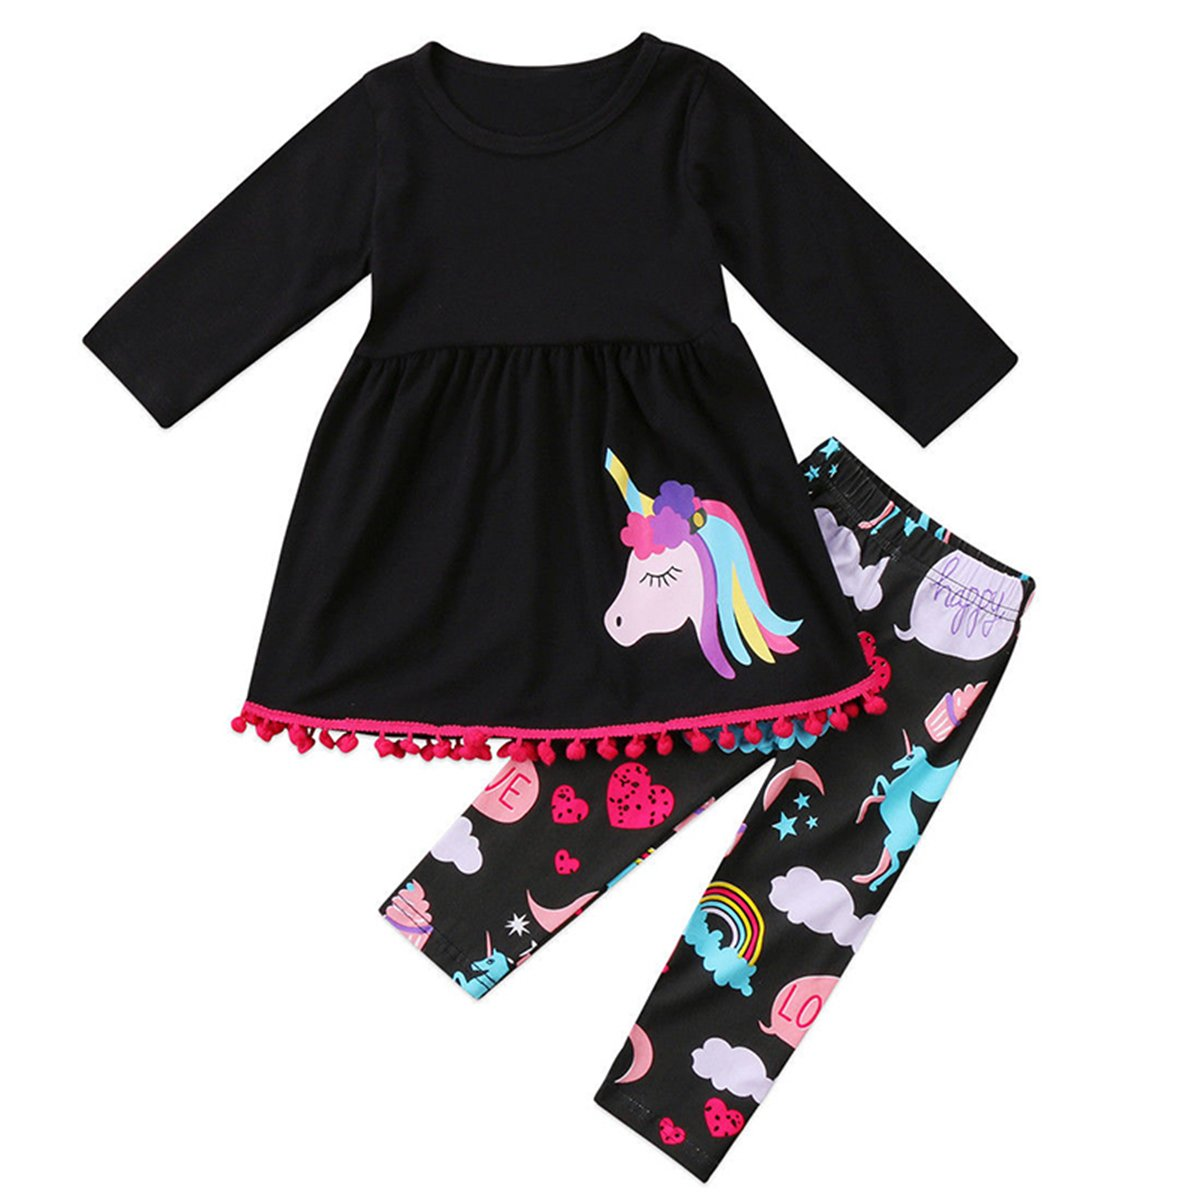 FUNOC Toddler Girls 2 Pc Unicorn Print Tunic Top Outfit Clothes, Baby T-Shirt Top Dress+Long Pants